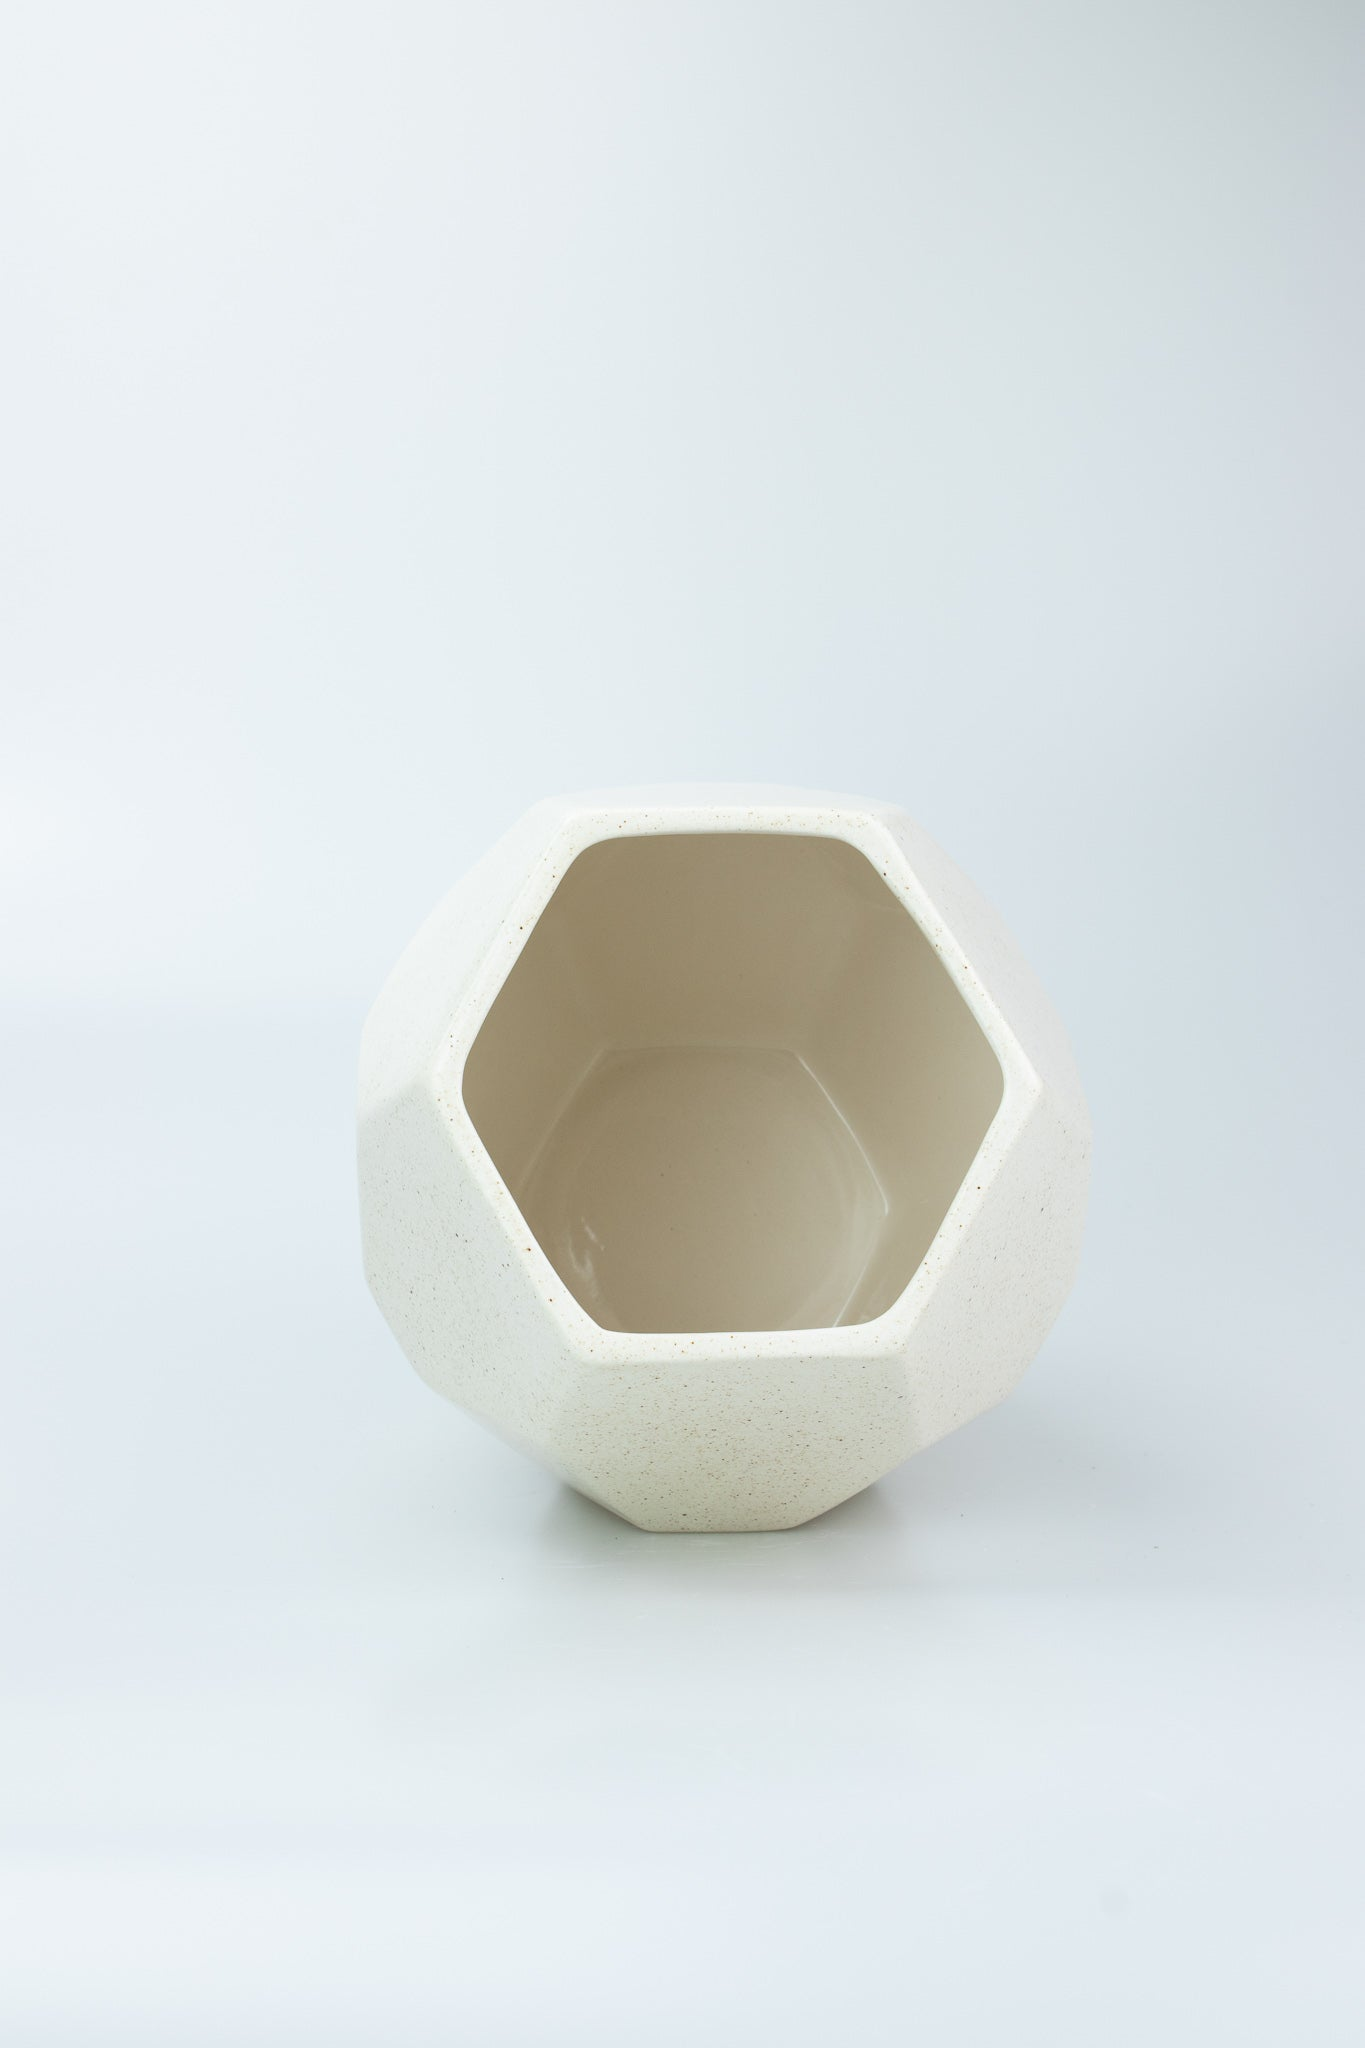 Ceramic Vase Hexagon Shaped